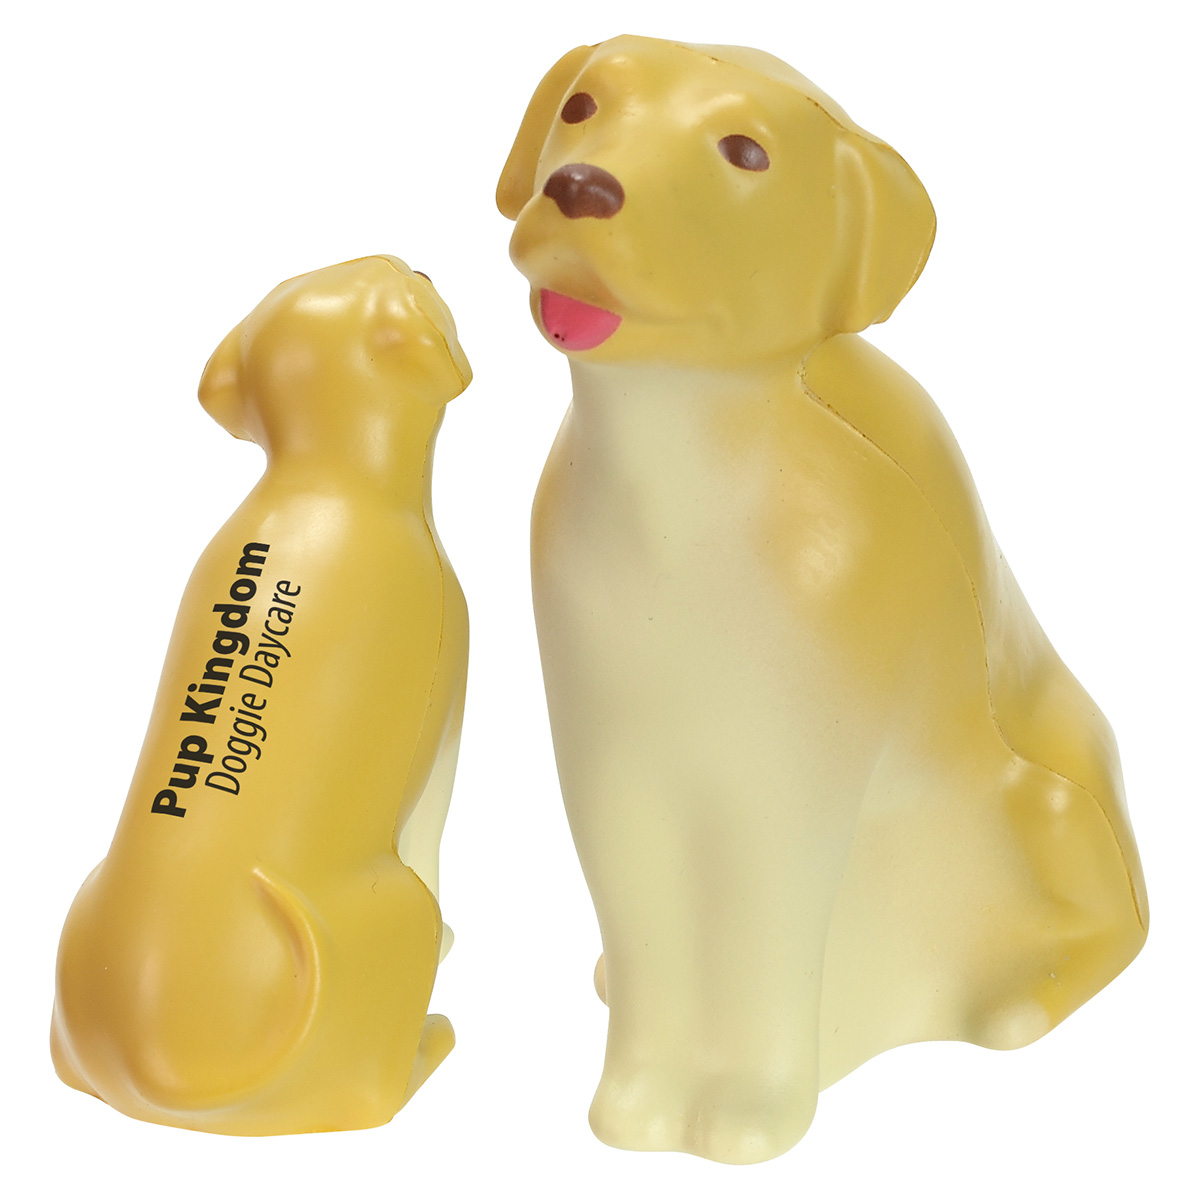 Labrador Stress Reliever, LPE-LB19, 1 Colour Imprint